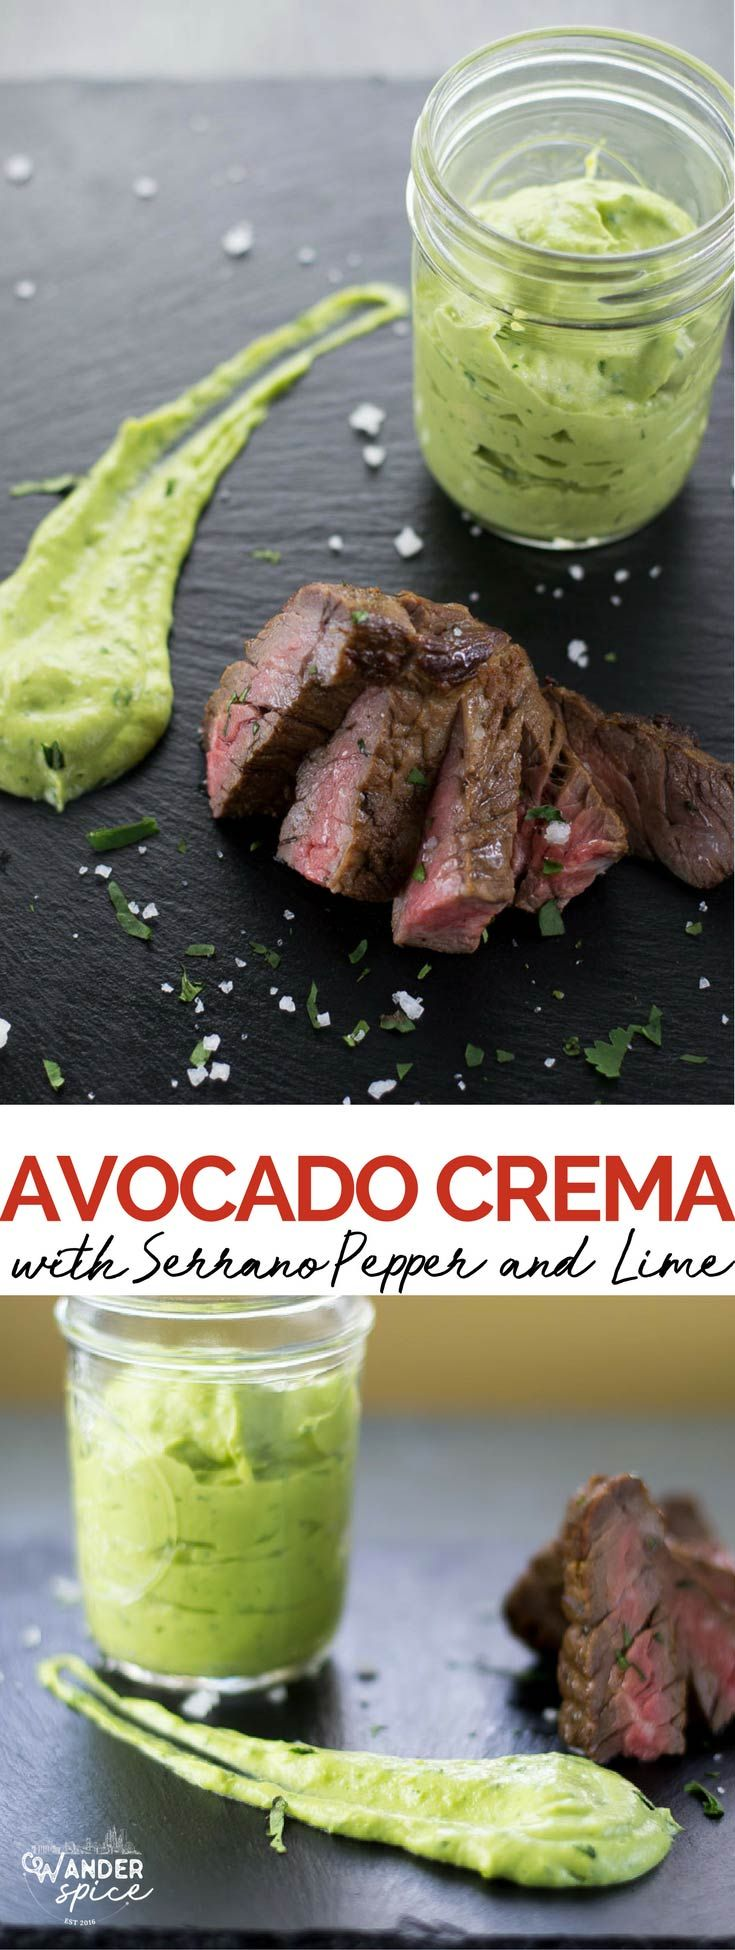 Avocado Cream Recipe. Fish Taco Sauce. Mexican Dipping Sauce that's Healthy